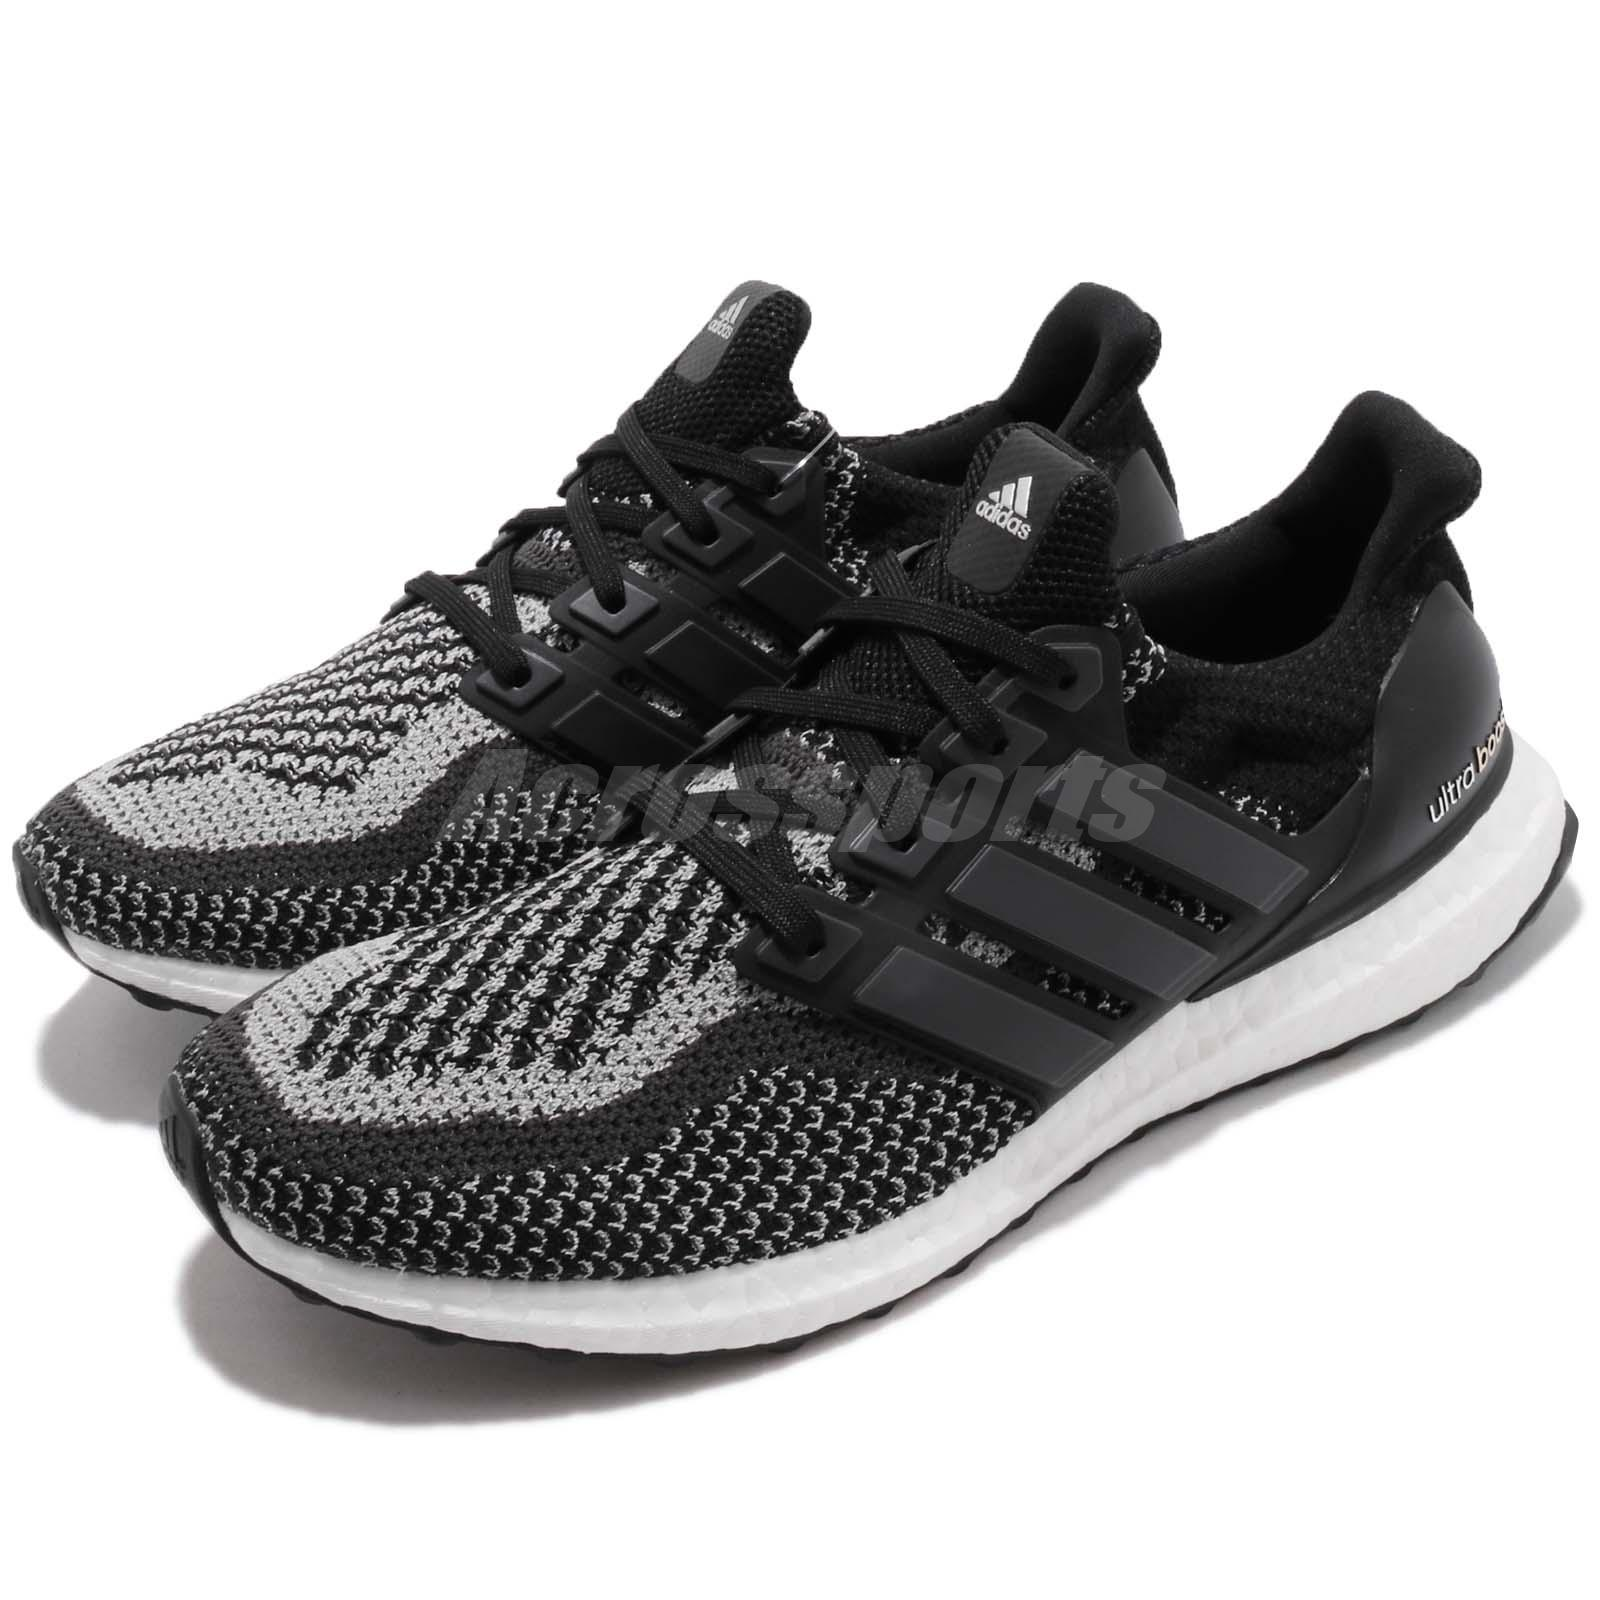 Details about adidas UltraBOOST LTD 2.0 Limited Black Reflective Men Running Shoes BY1795